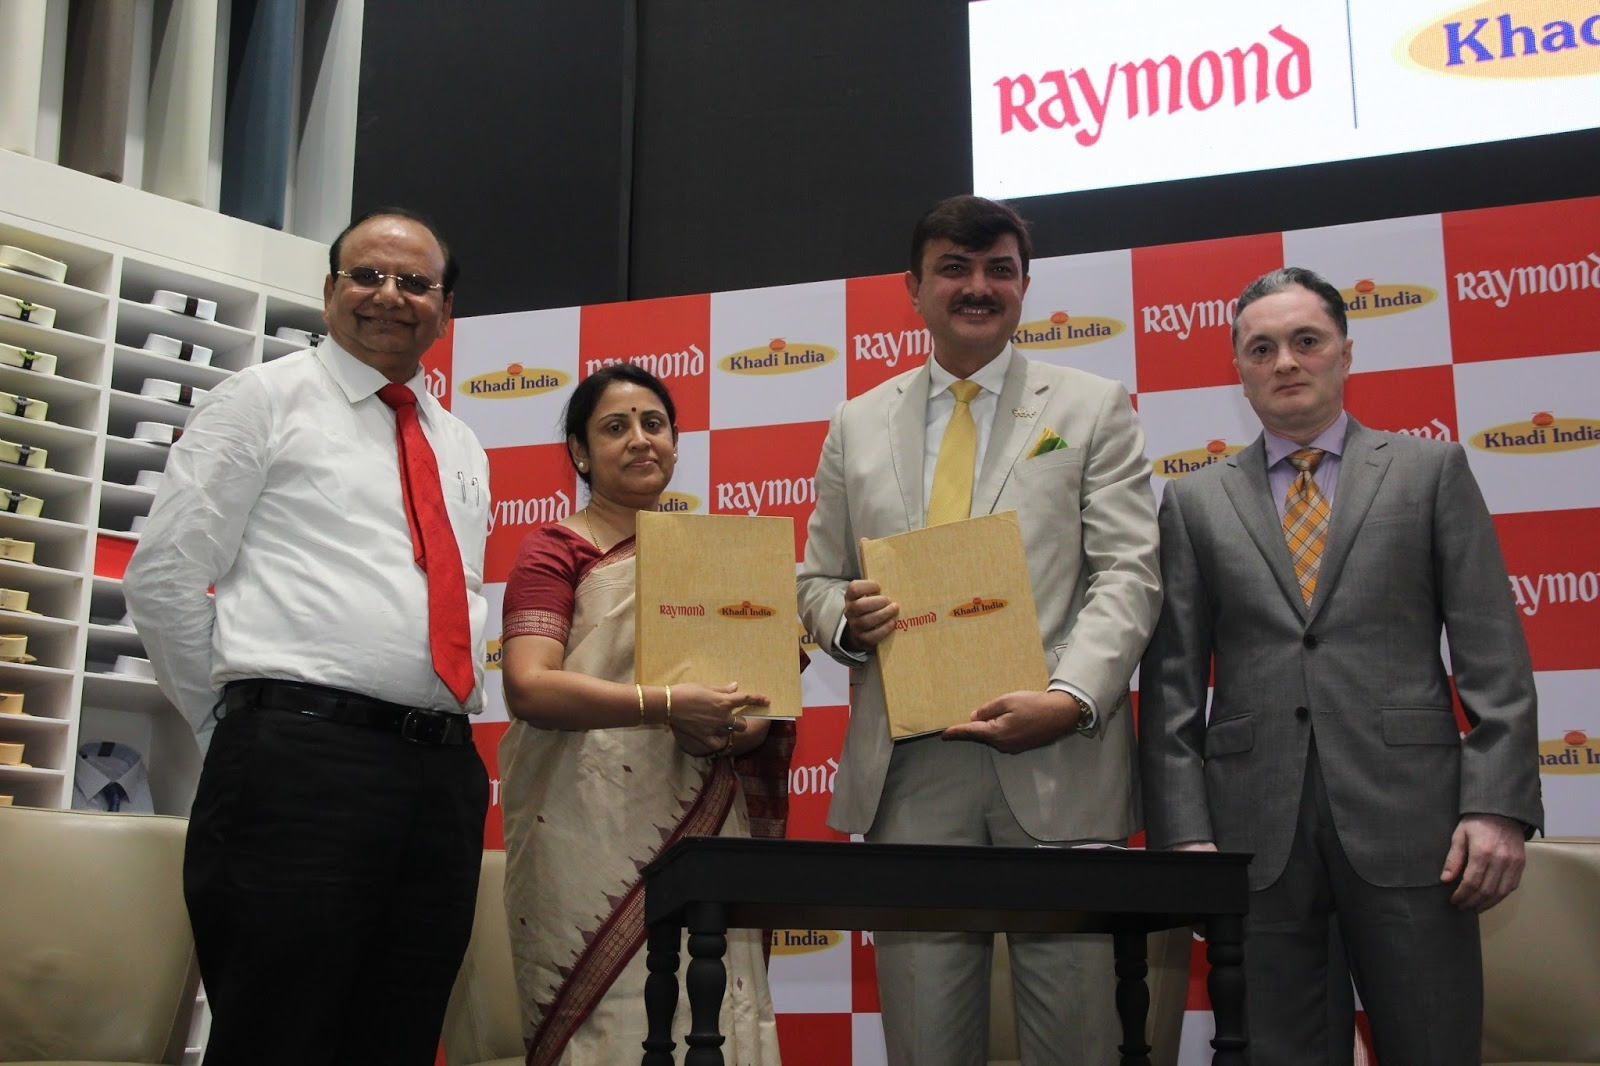 Raymond launches khadi label as part of Make in India initiative